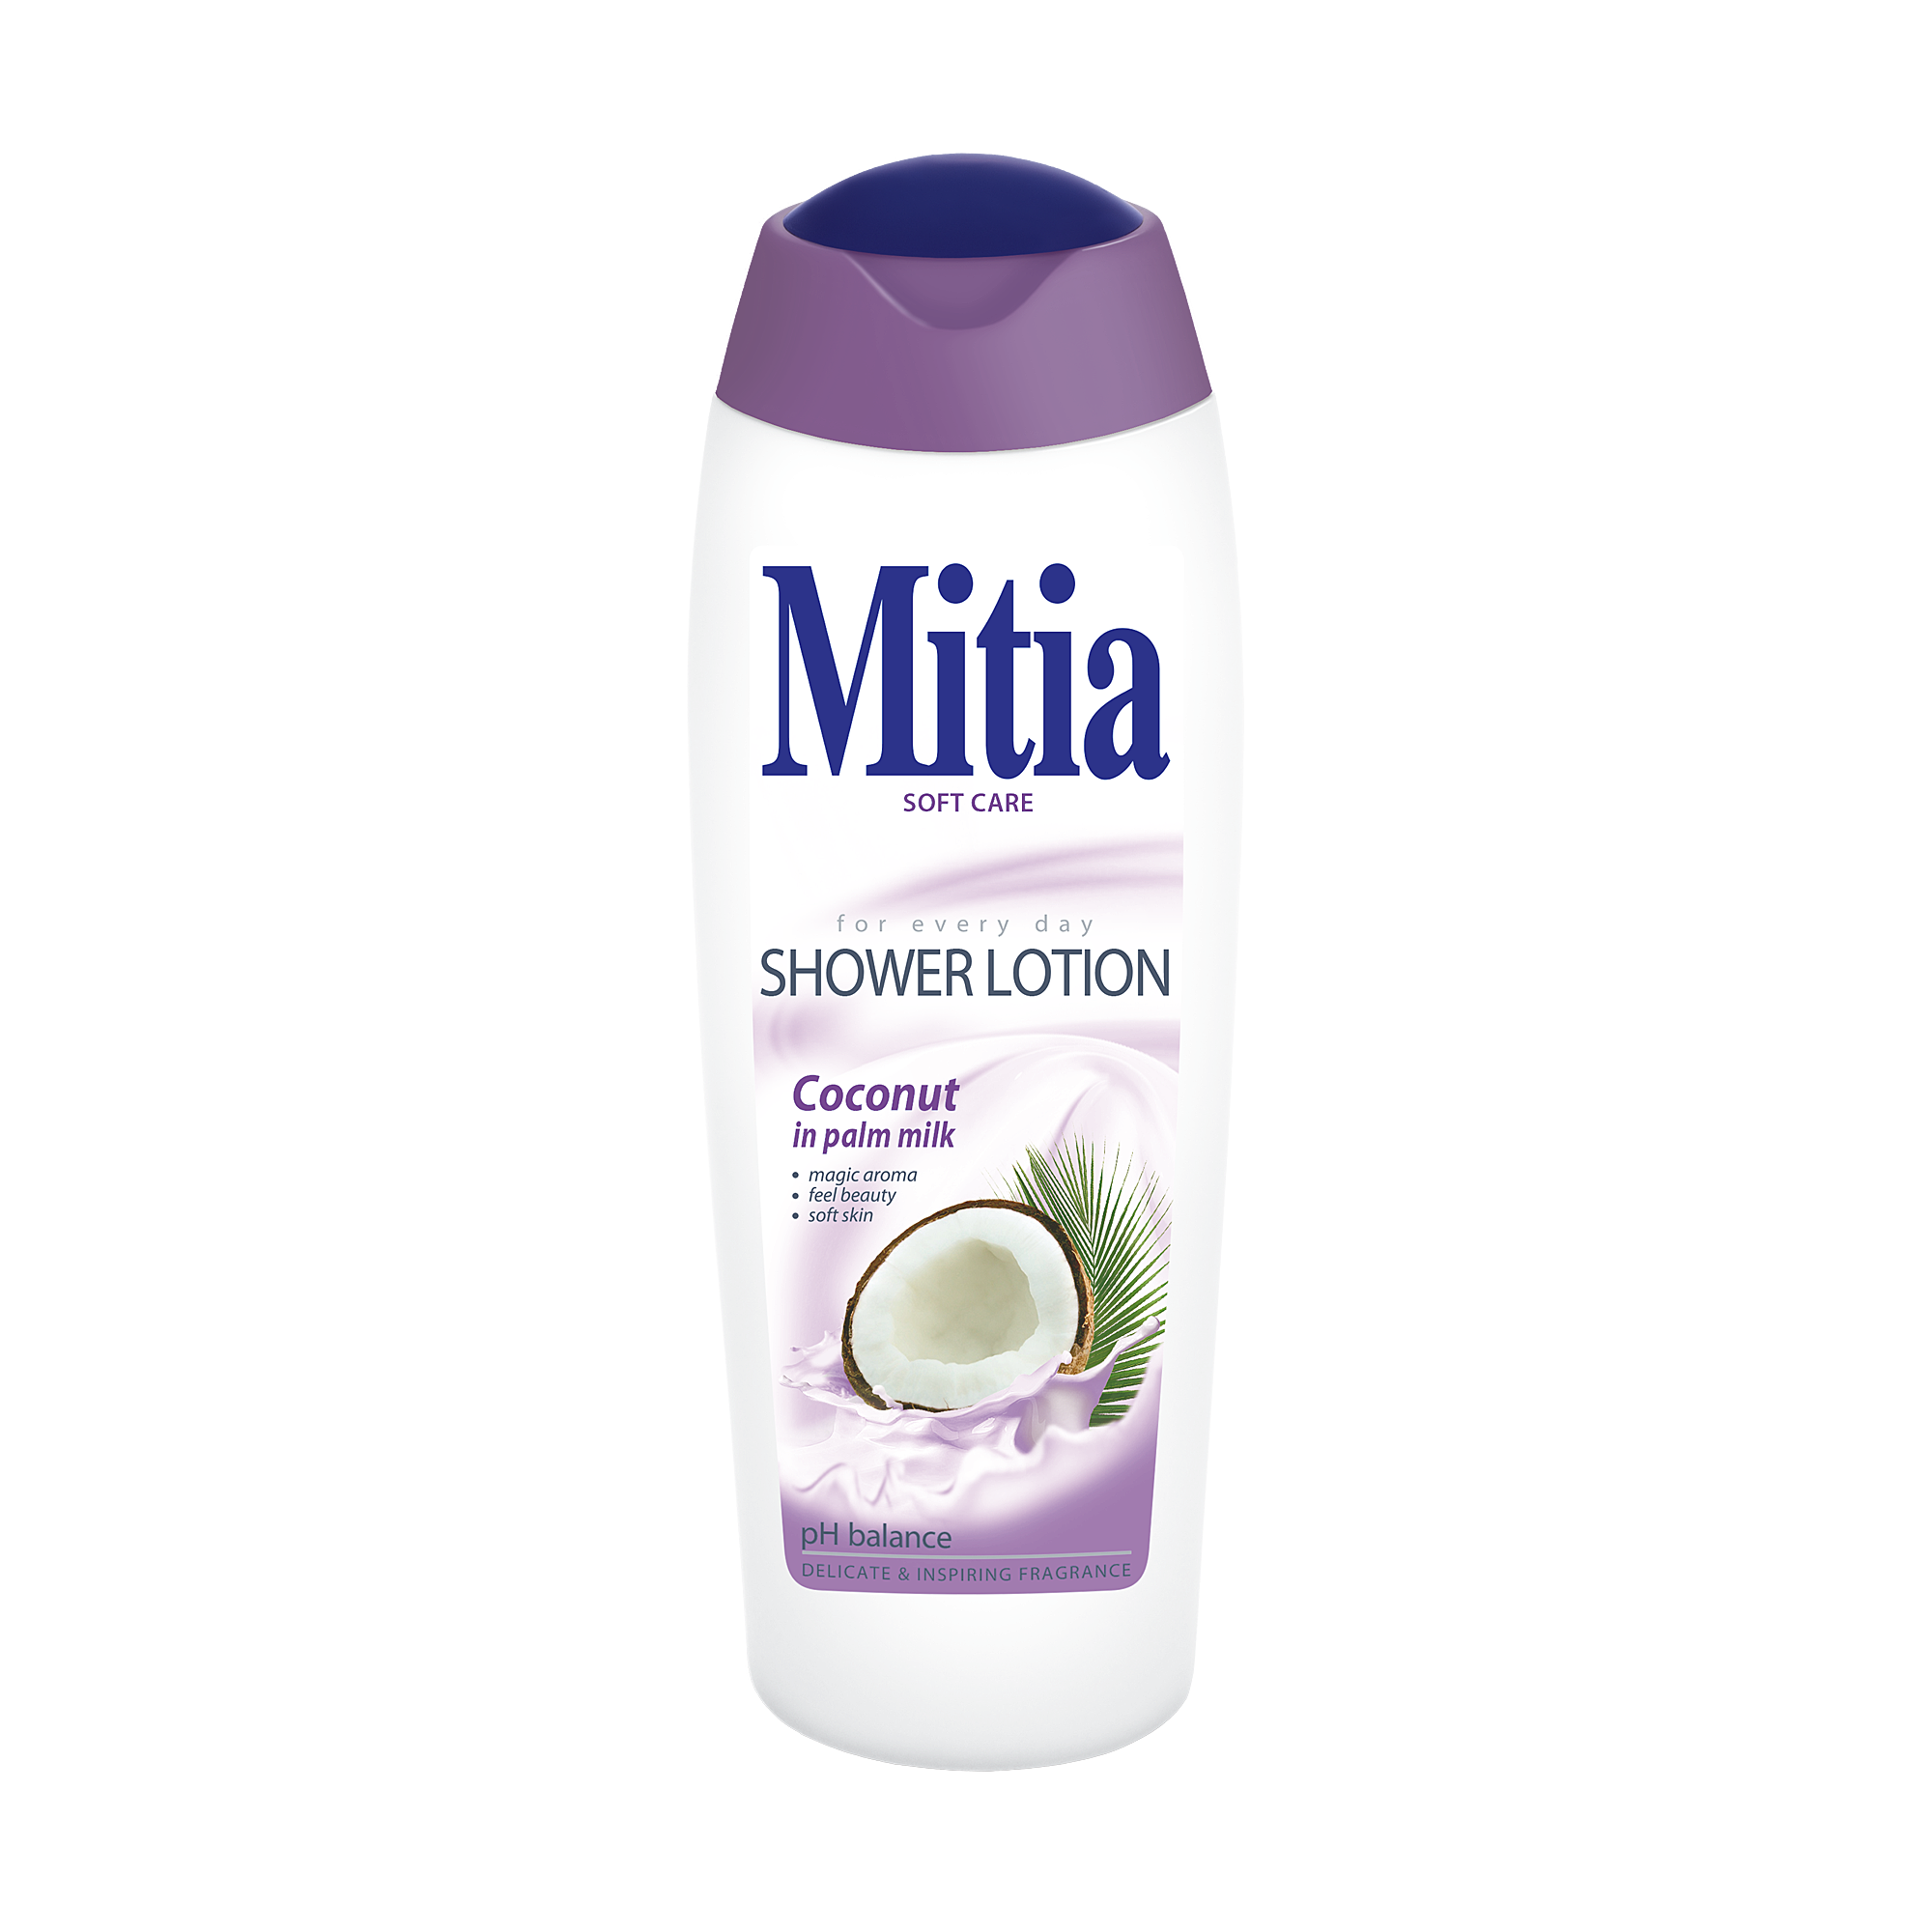 Mitia Coconut in palm milk shower milk